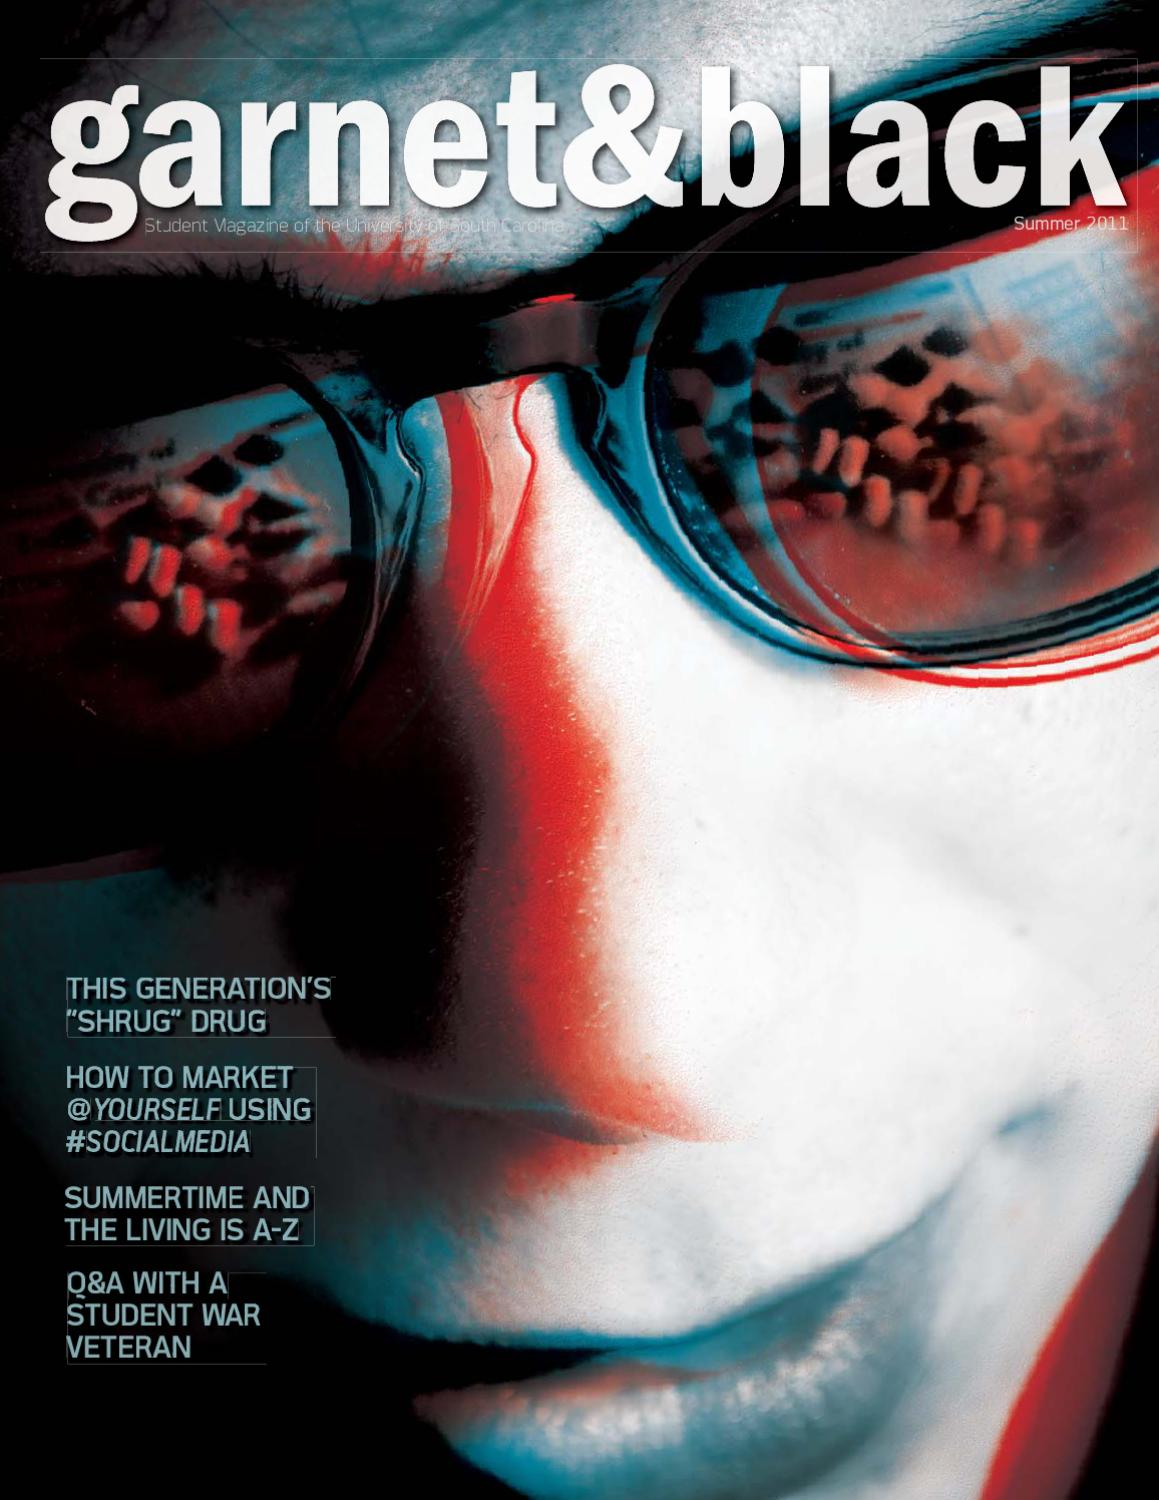 Garnet & black summer issue 2011 by garnet & black magazine   issuu